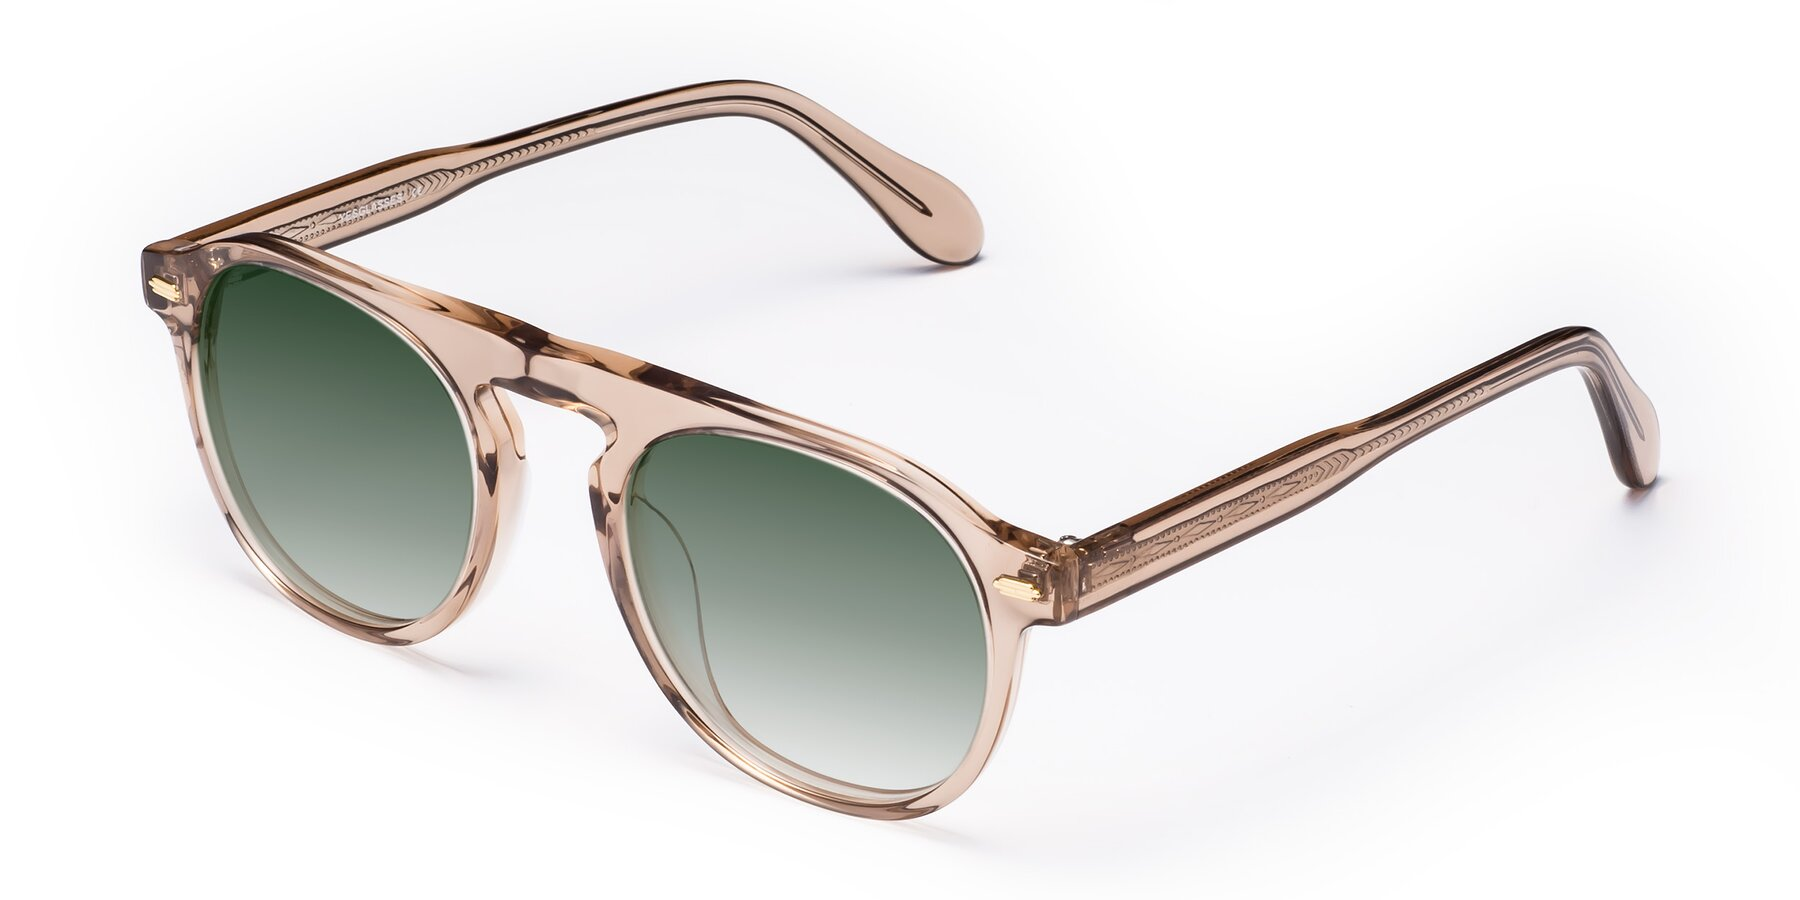 Angle of Mufasa in light Brown with Green Gradient Lenses